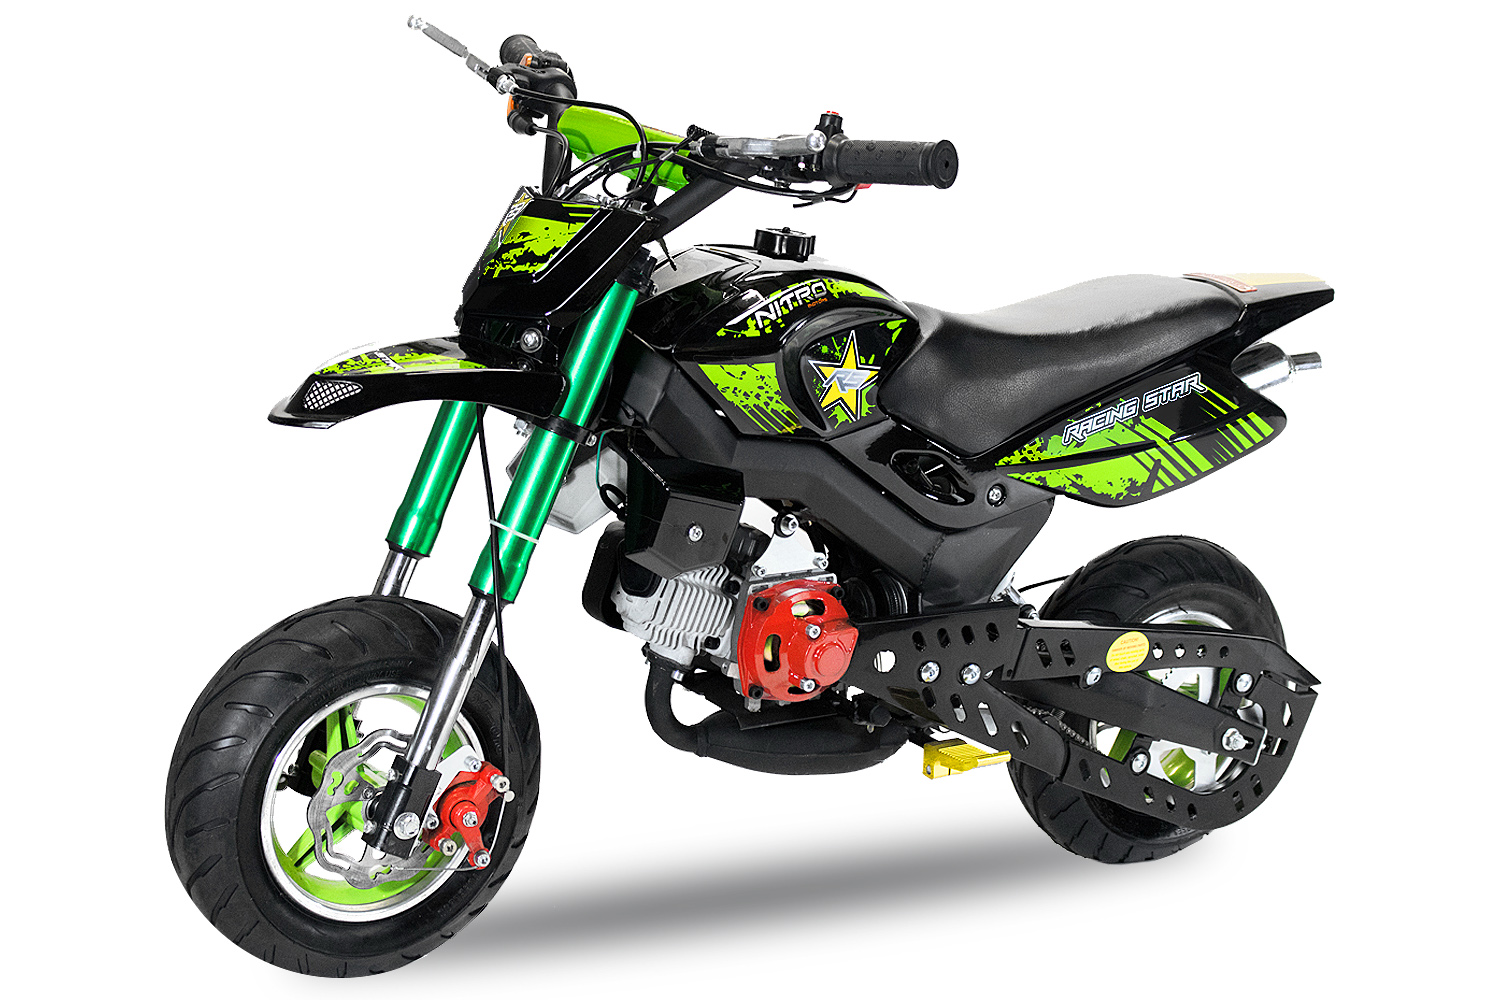 pocket bike nitoo hobbit 49cc motocross kindermotorrad. Black Bedroom Furniture Sets. Home Design Ideas